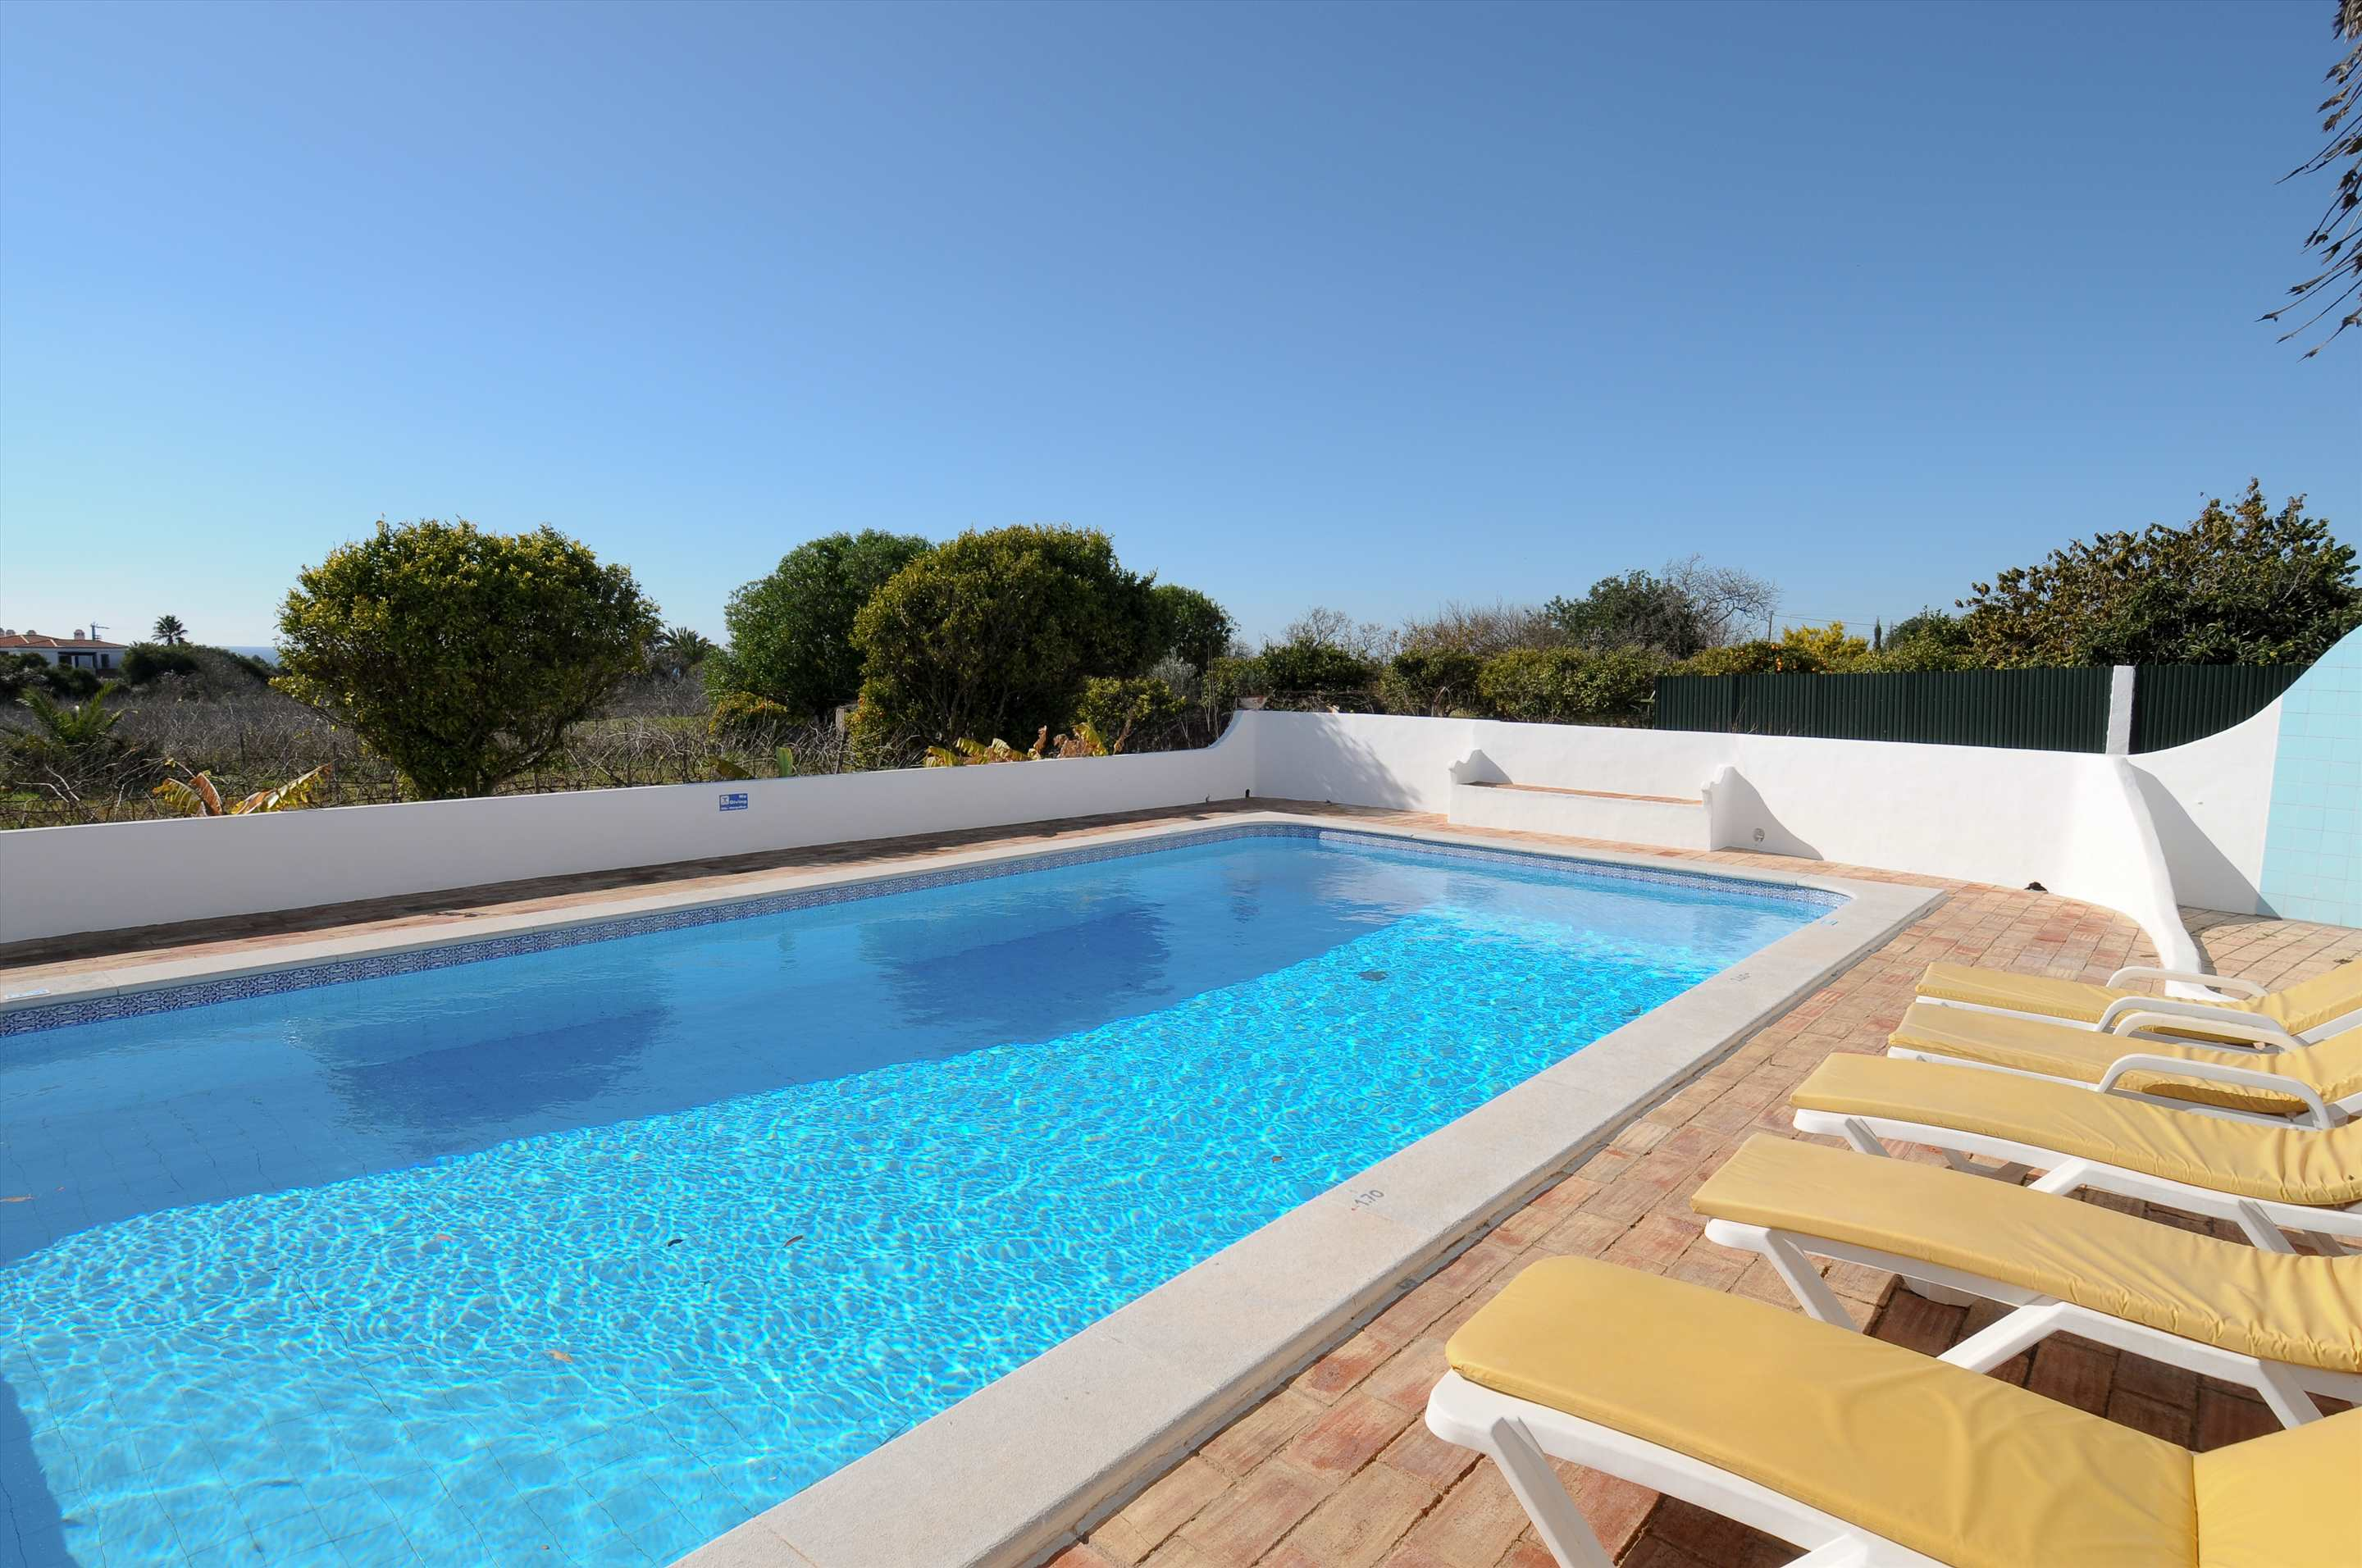 Casa Alexandra, 7-8 persons rate, 4 bedroom villa in Carvoeiro Area, Algarve Photo #2